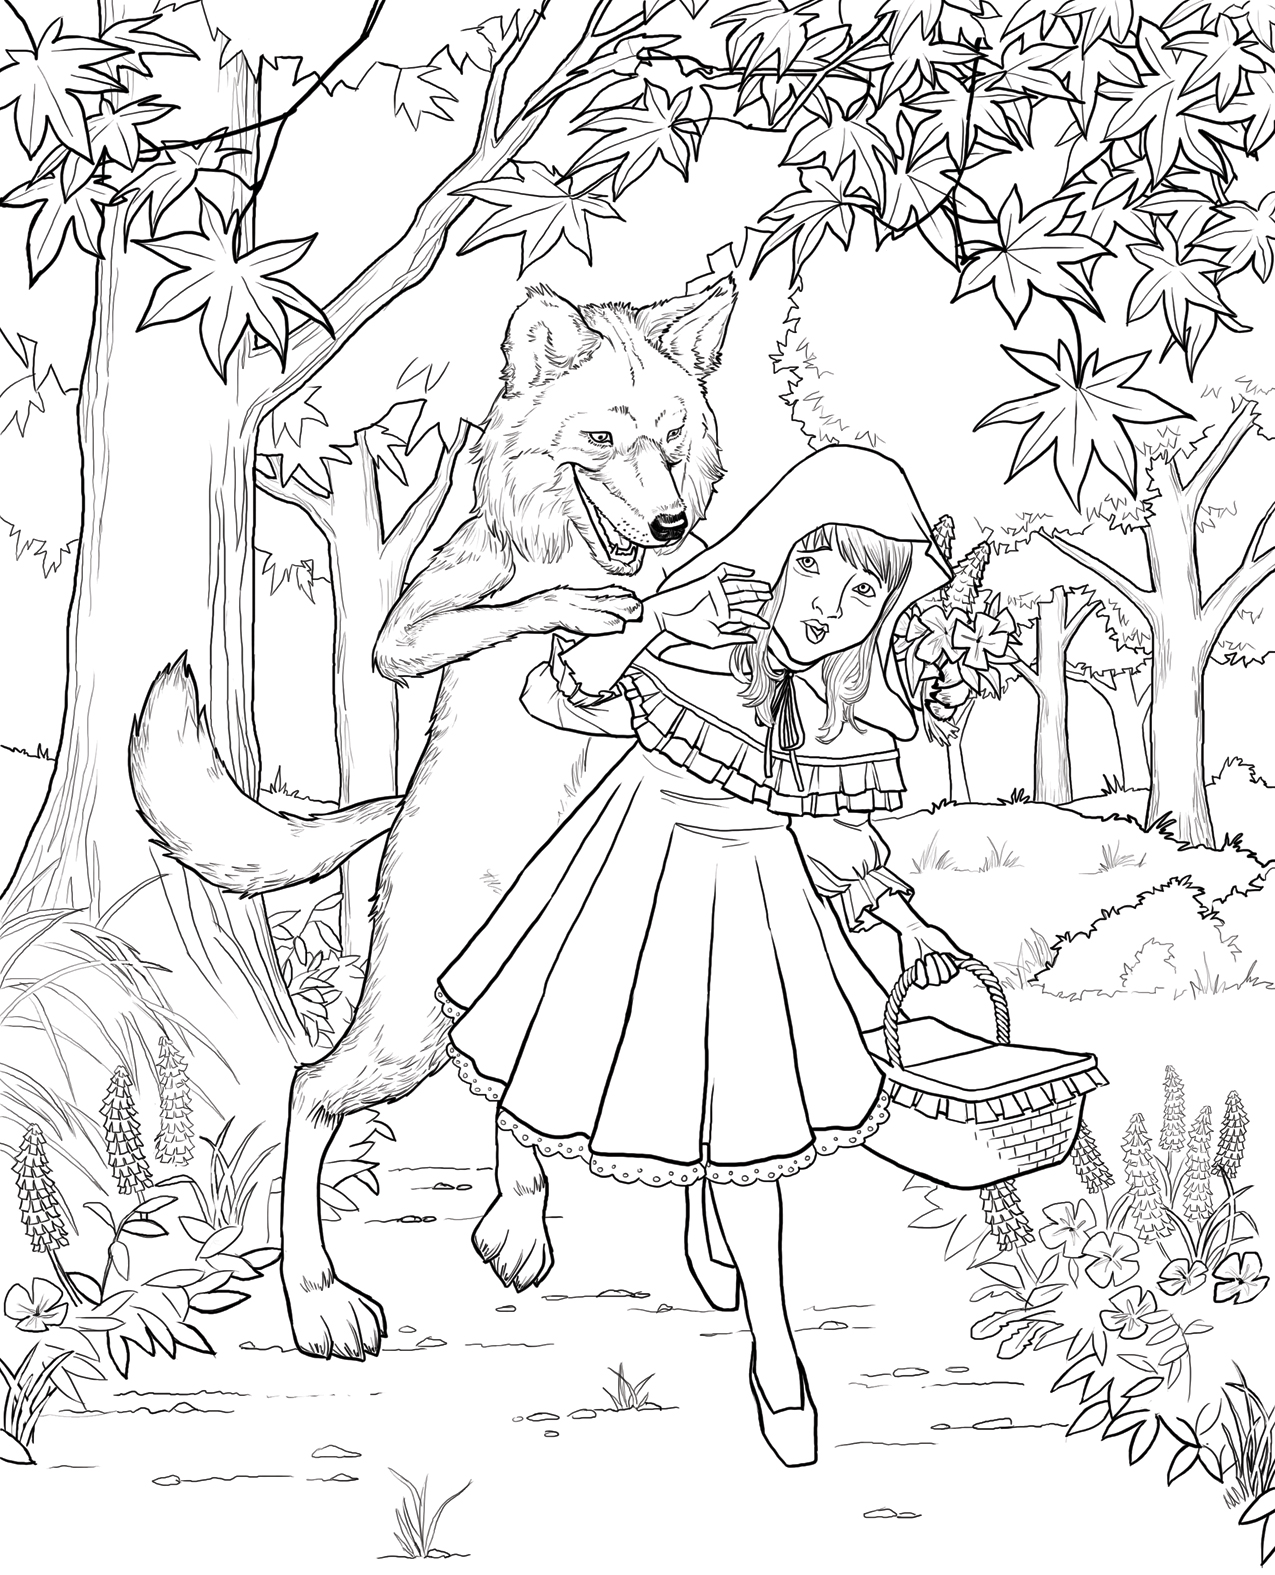 red riding hood coloring pages - photo#5